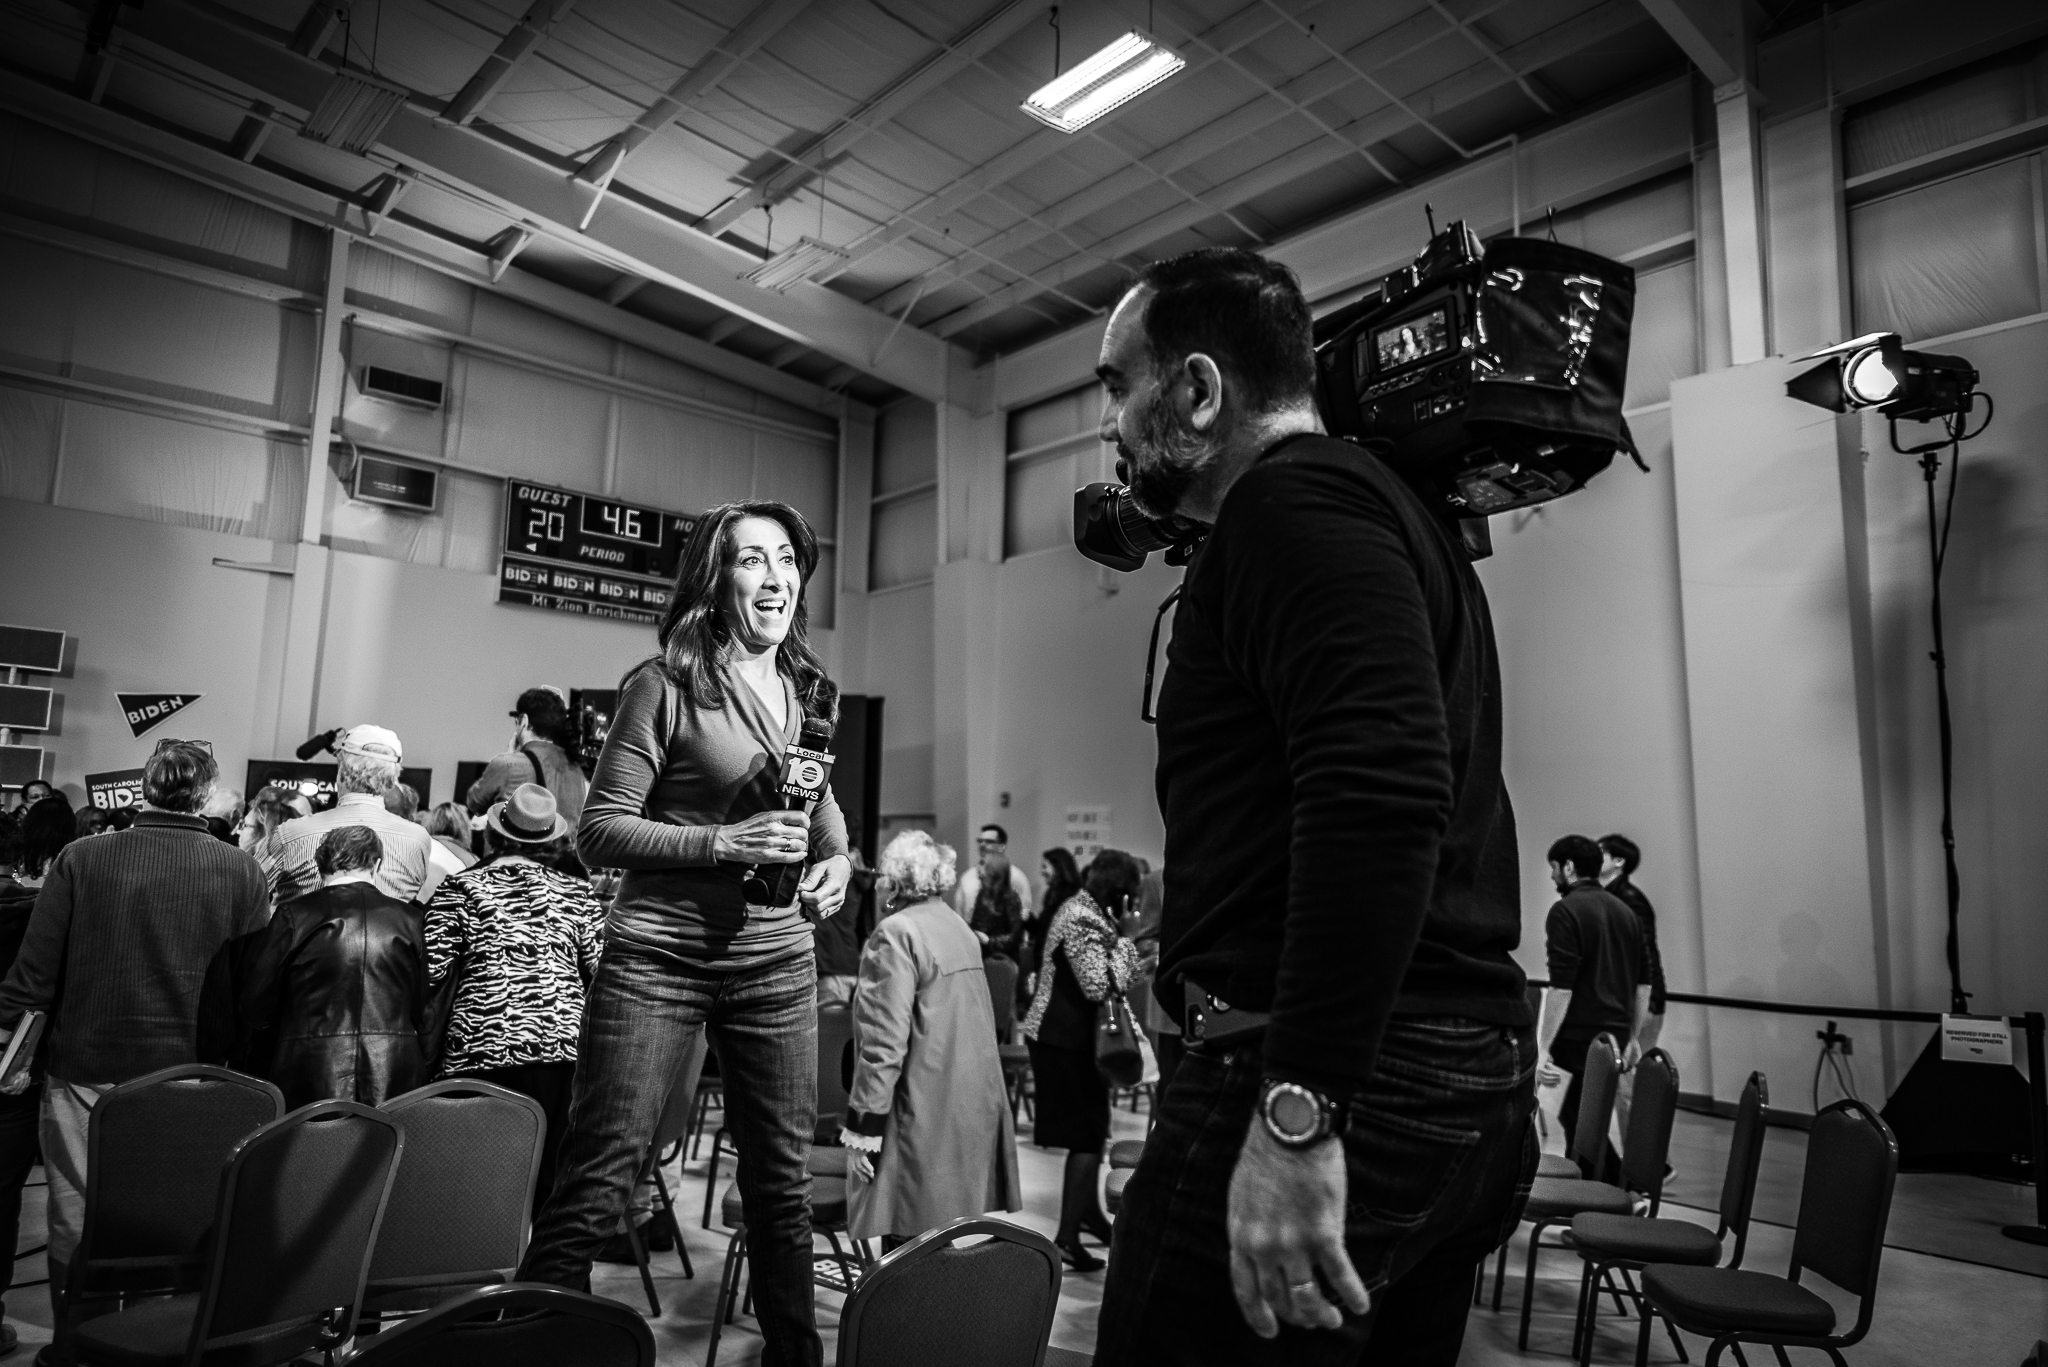 Local 10 news reporters film a segment at the end of a Joe Biden rally, wrapping up their coverage of the event. February 28, 2020. Photo: Lance Monotone.